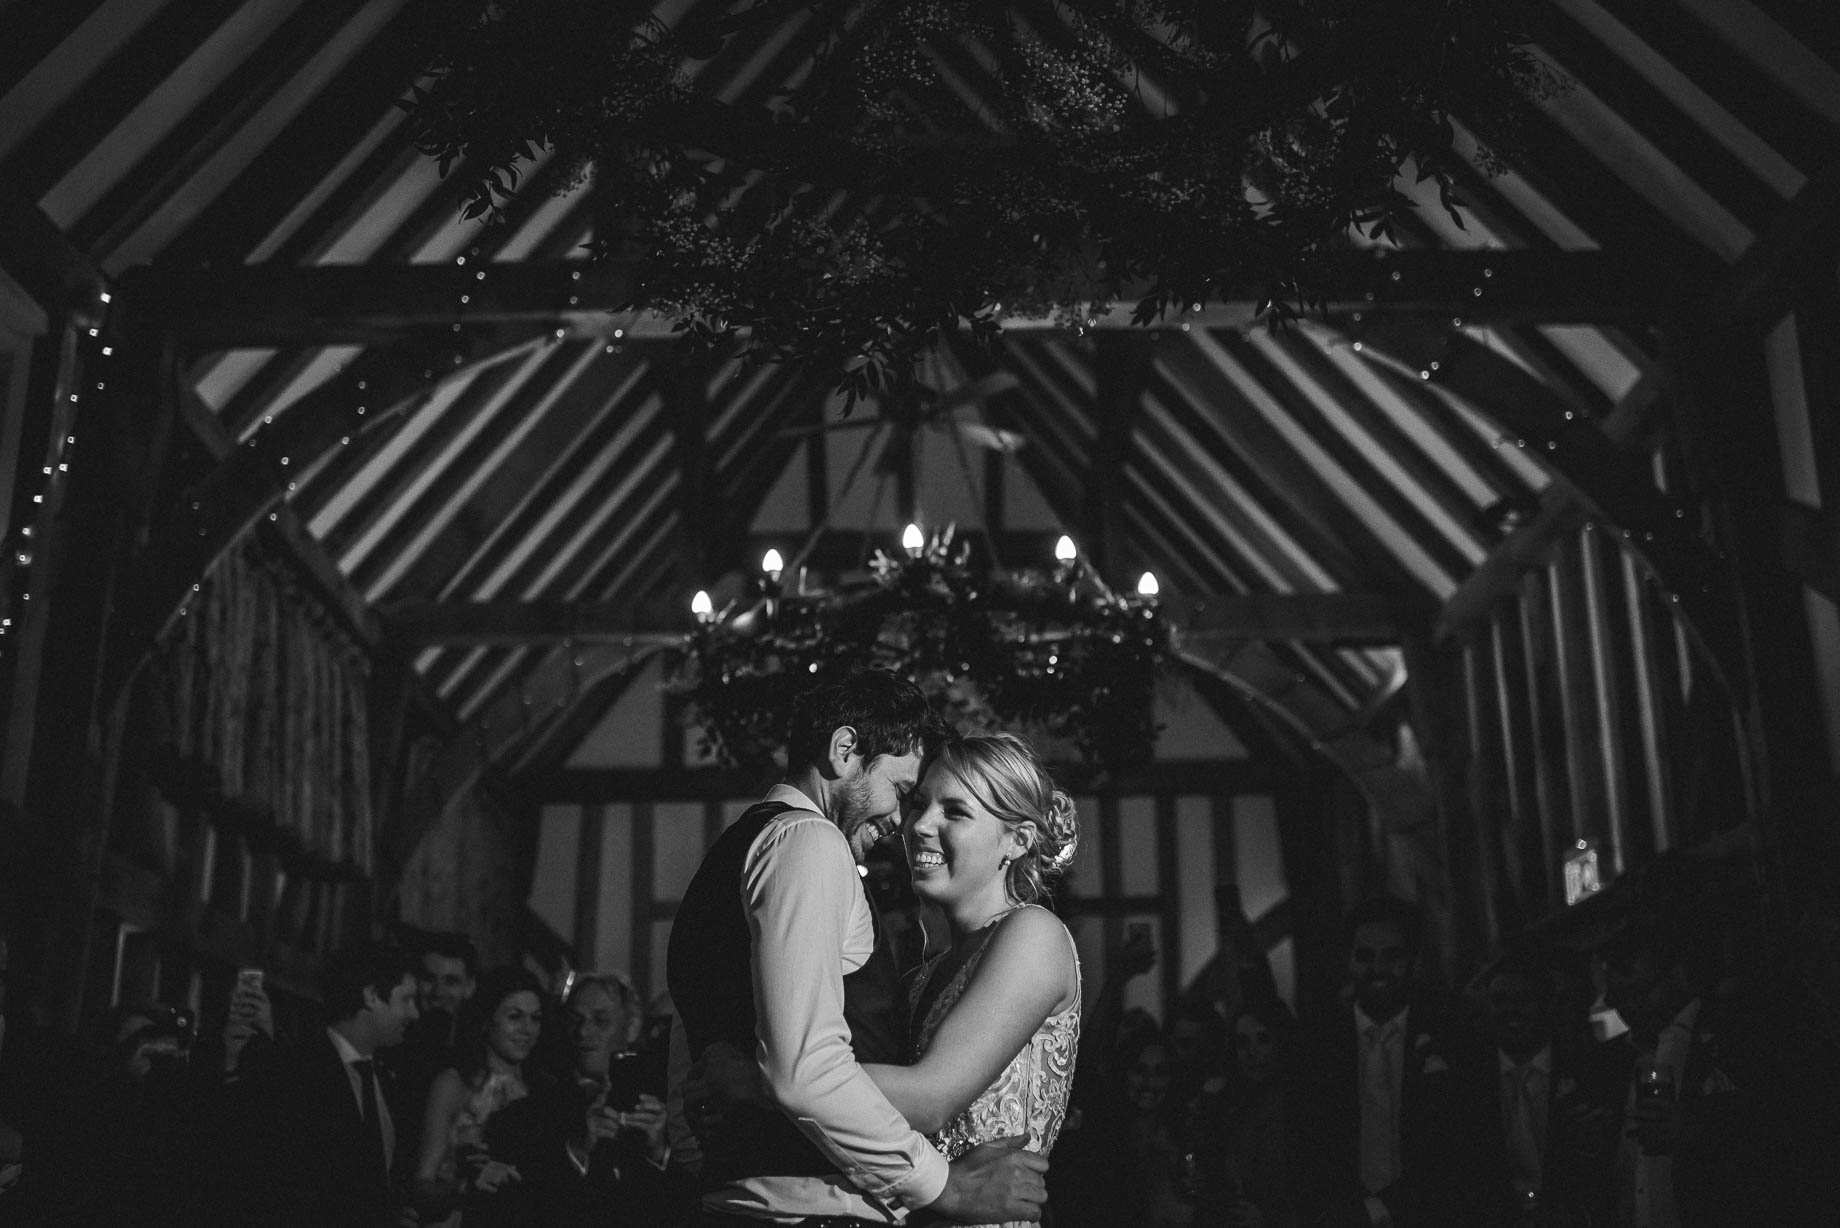 Gate Street Barn wedding photography - Carissa and Richard